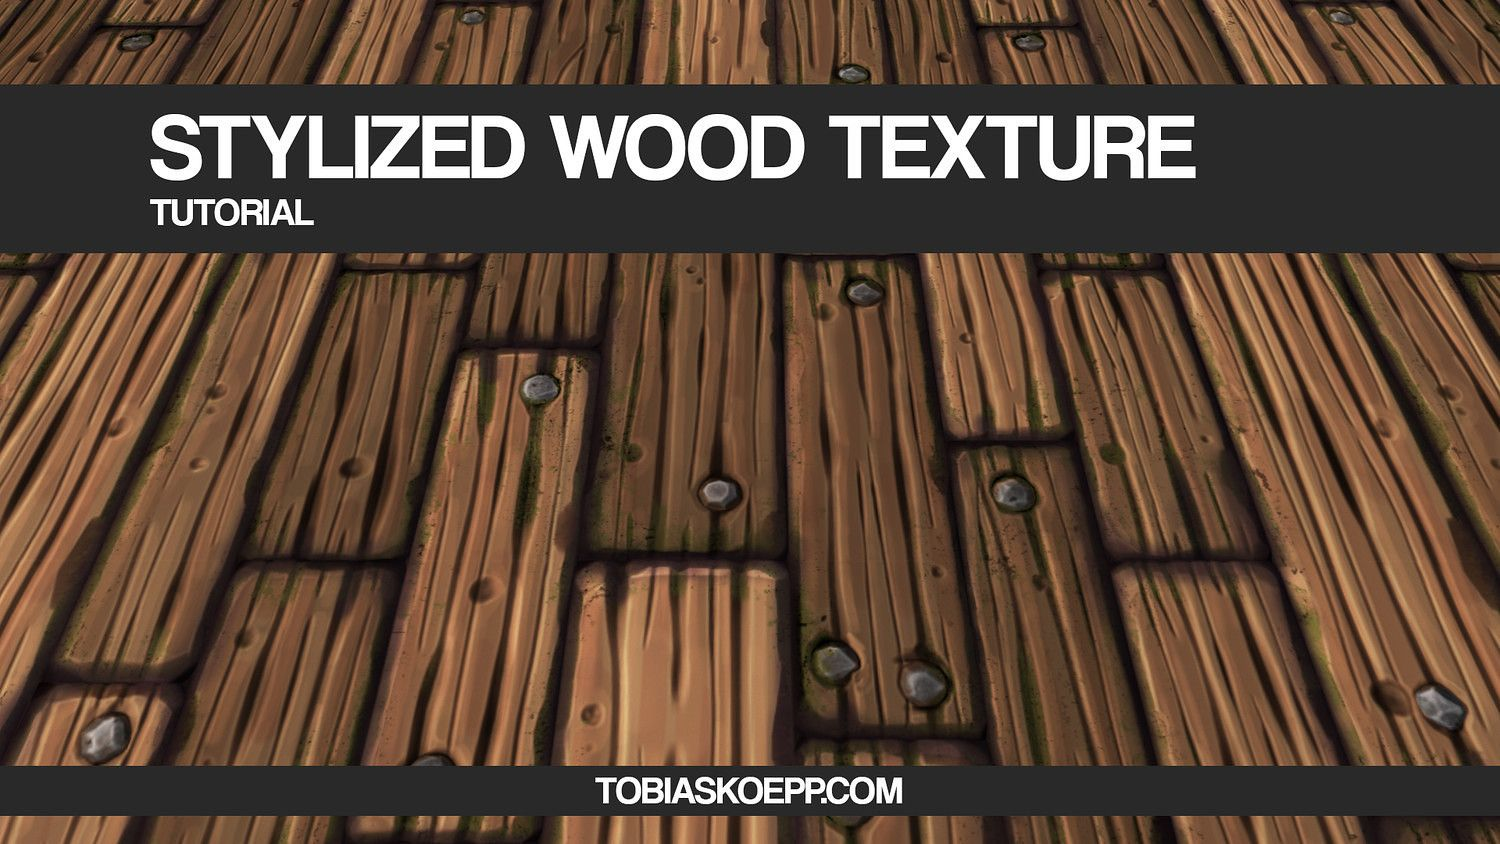 This Tutorial Covers The Entire Creation Of A Stylized Tiling Wood Texture I Will Cover The Preparation Wood Texture Character Design Tutorial Wooden Textures